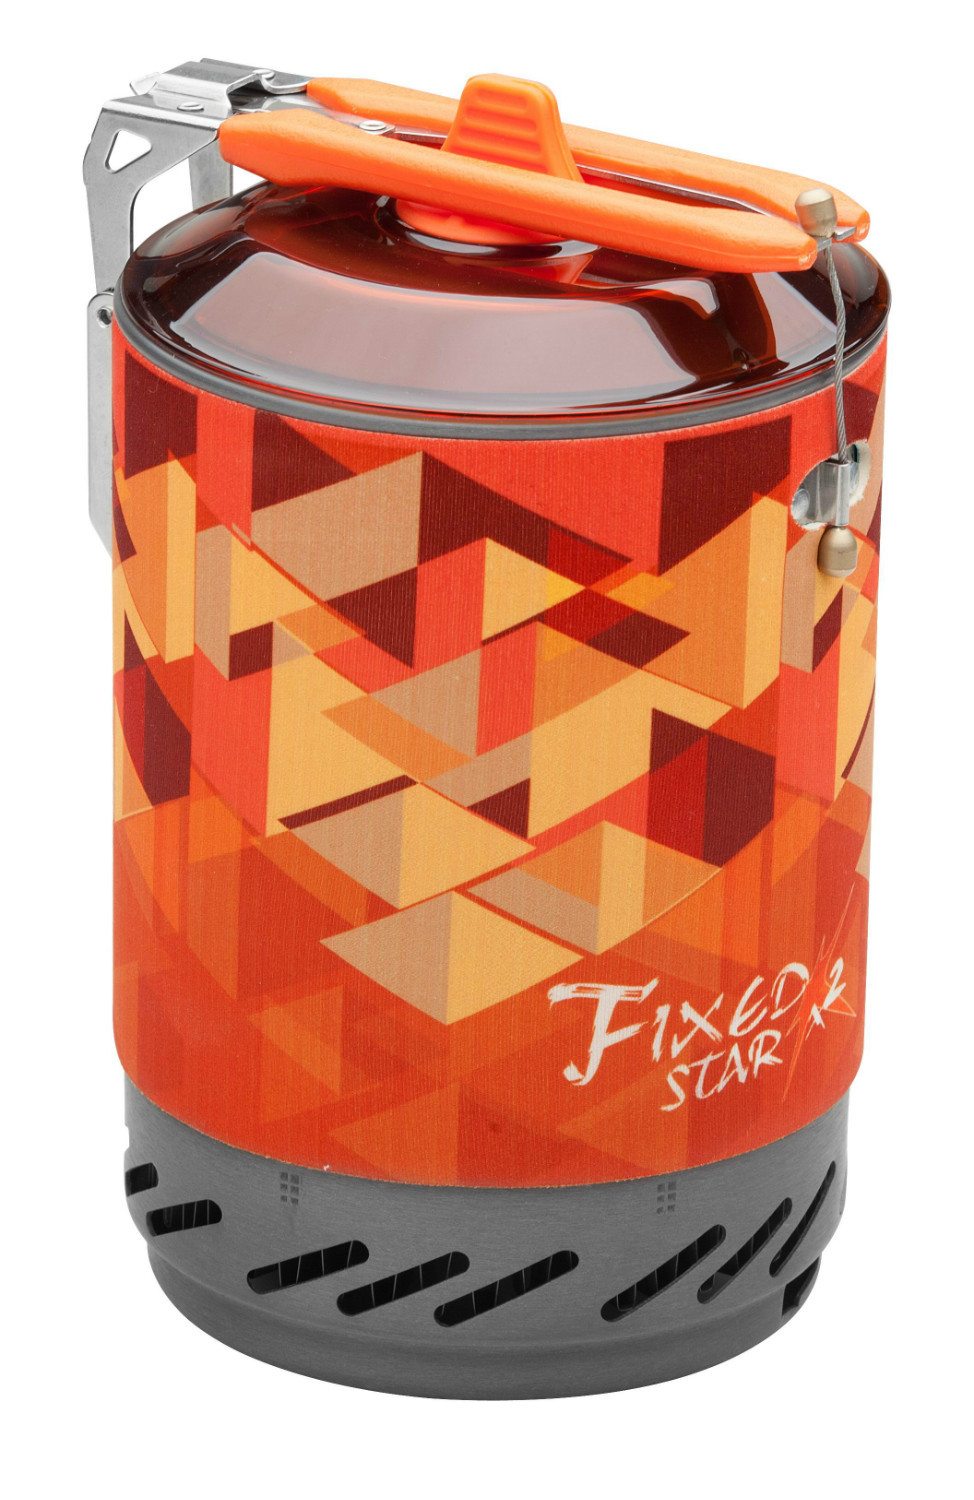 Upgraded Fire Maple One-Piece Camping Stove Heat Exchanger Pot Cooking Stove & Pot Fixed Star X2(China (Mainland))